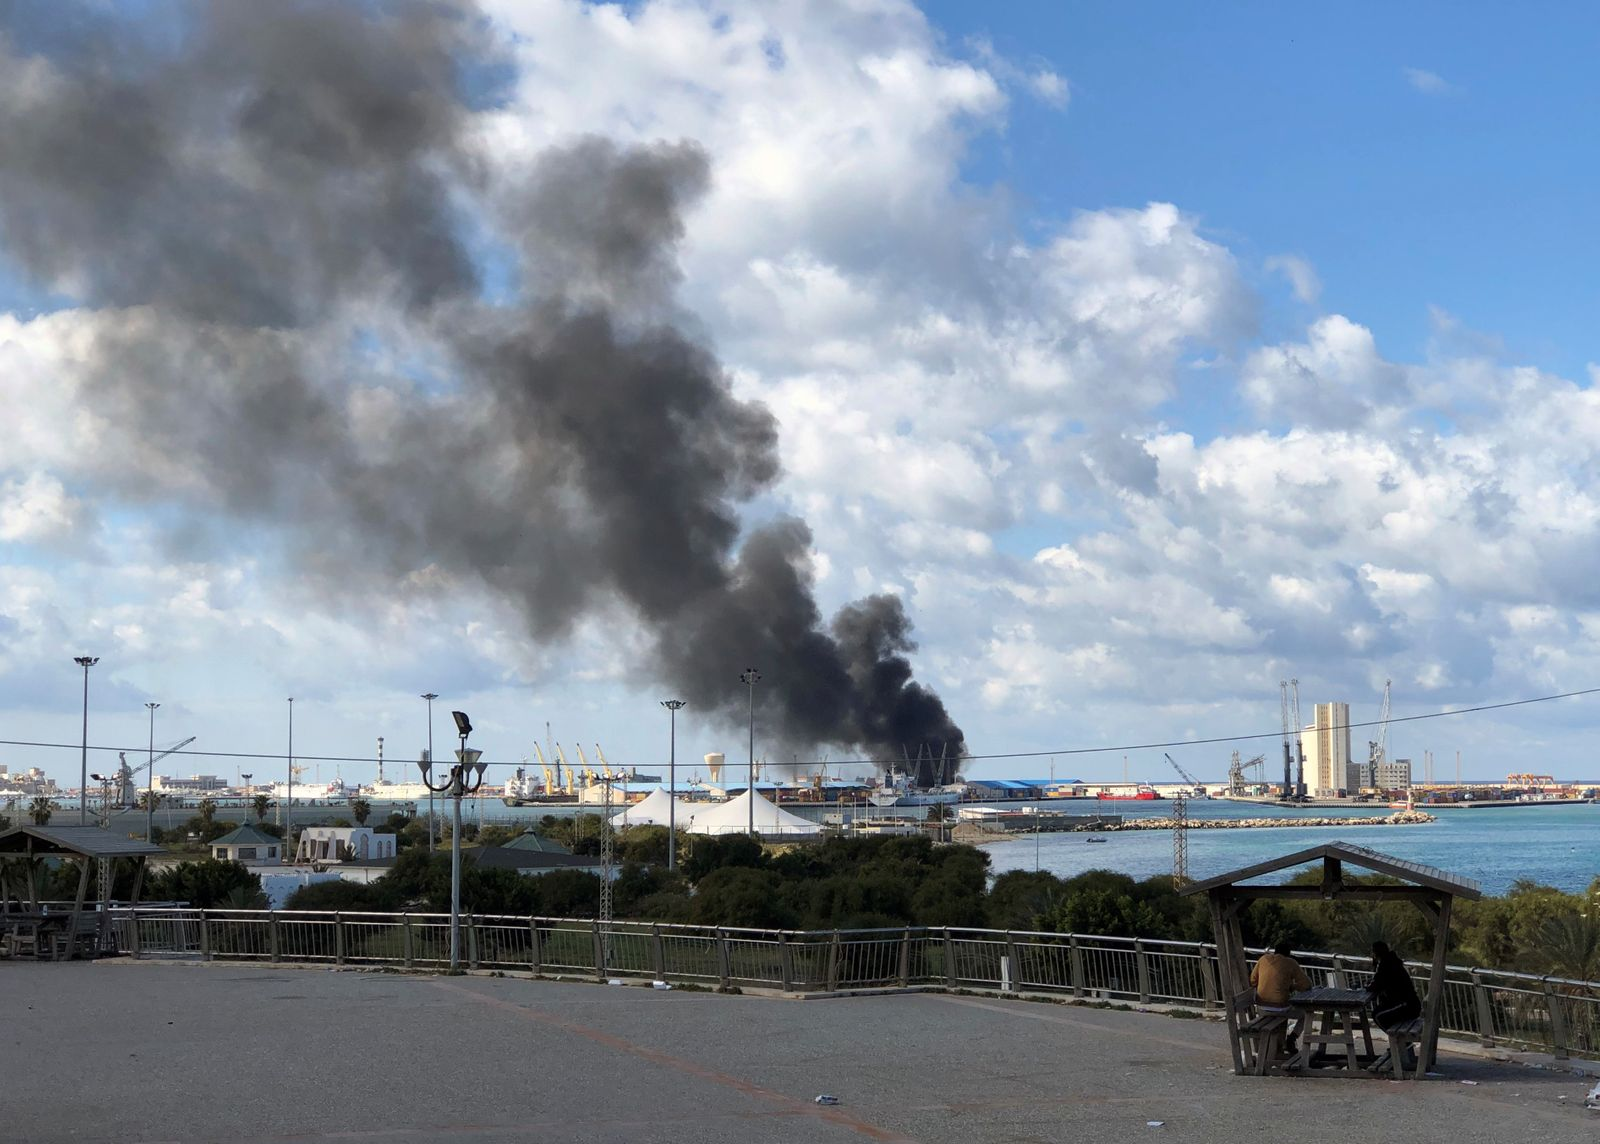 Smoke rises from a port of Tripoli after being attacked in Tripoli